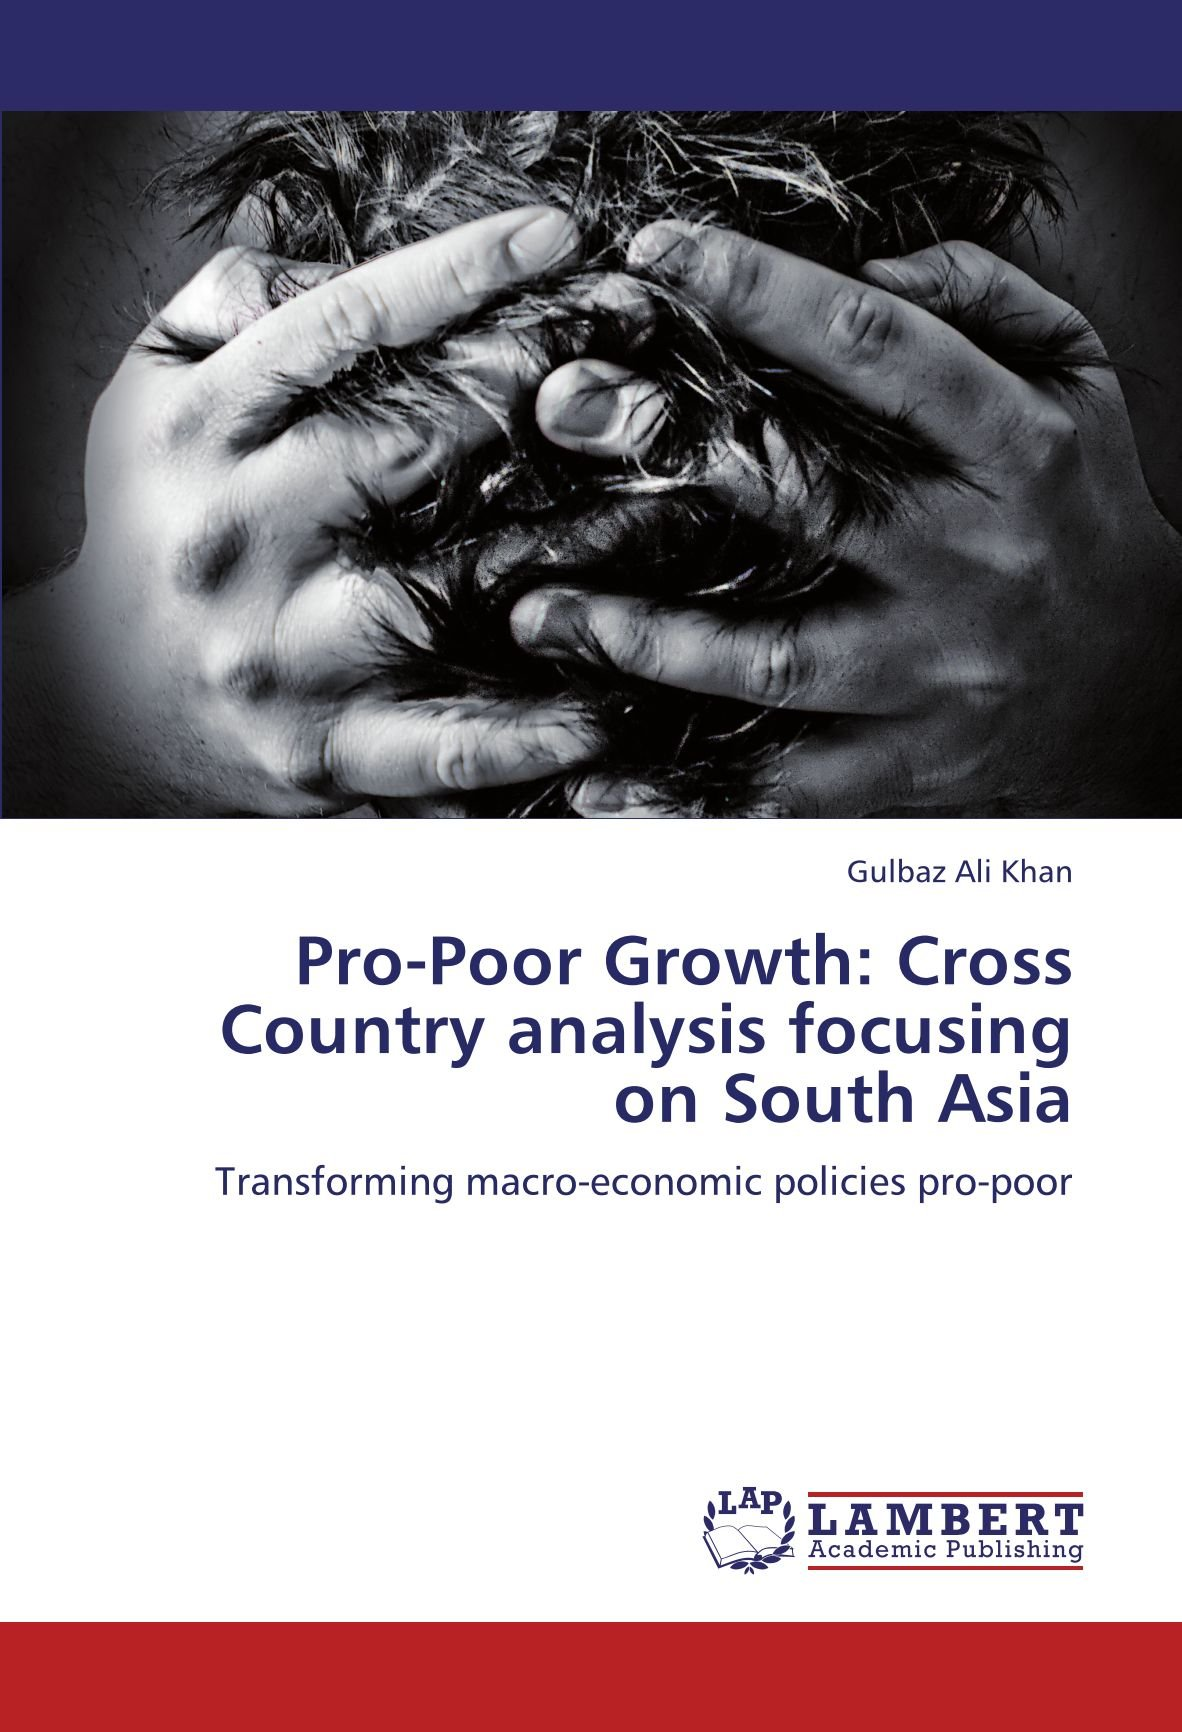 Pro-Poor Growth: Cross Country analysis focusing on South Asia: Transforming macro-economic policies pro-poor PDF